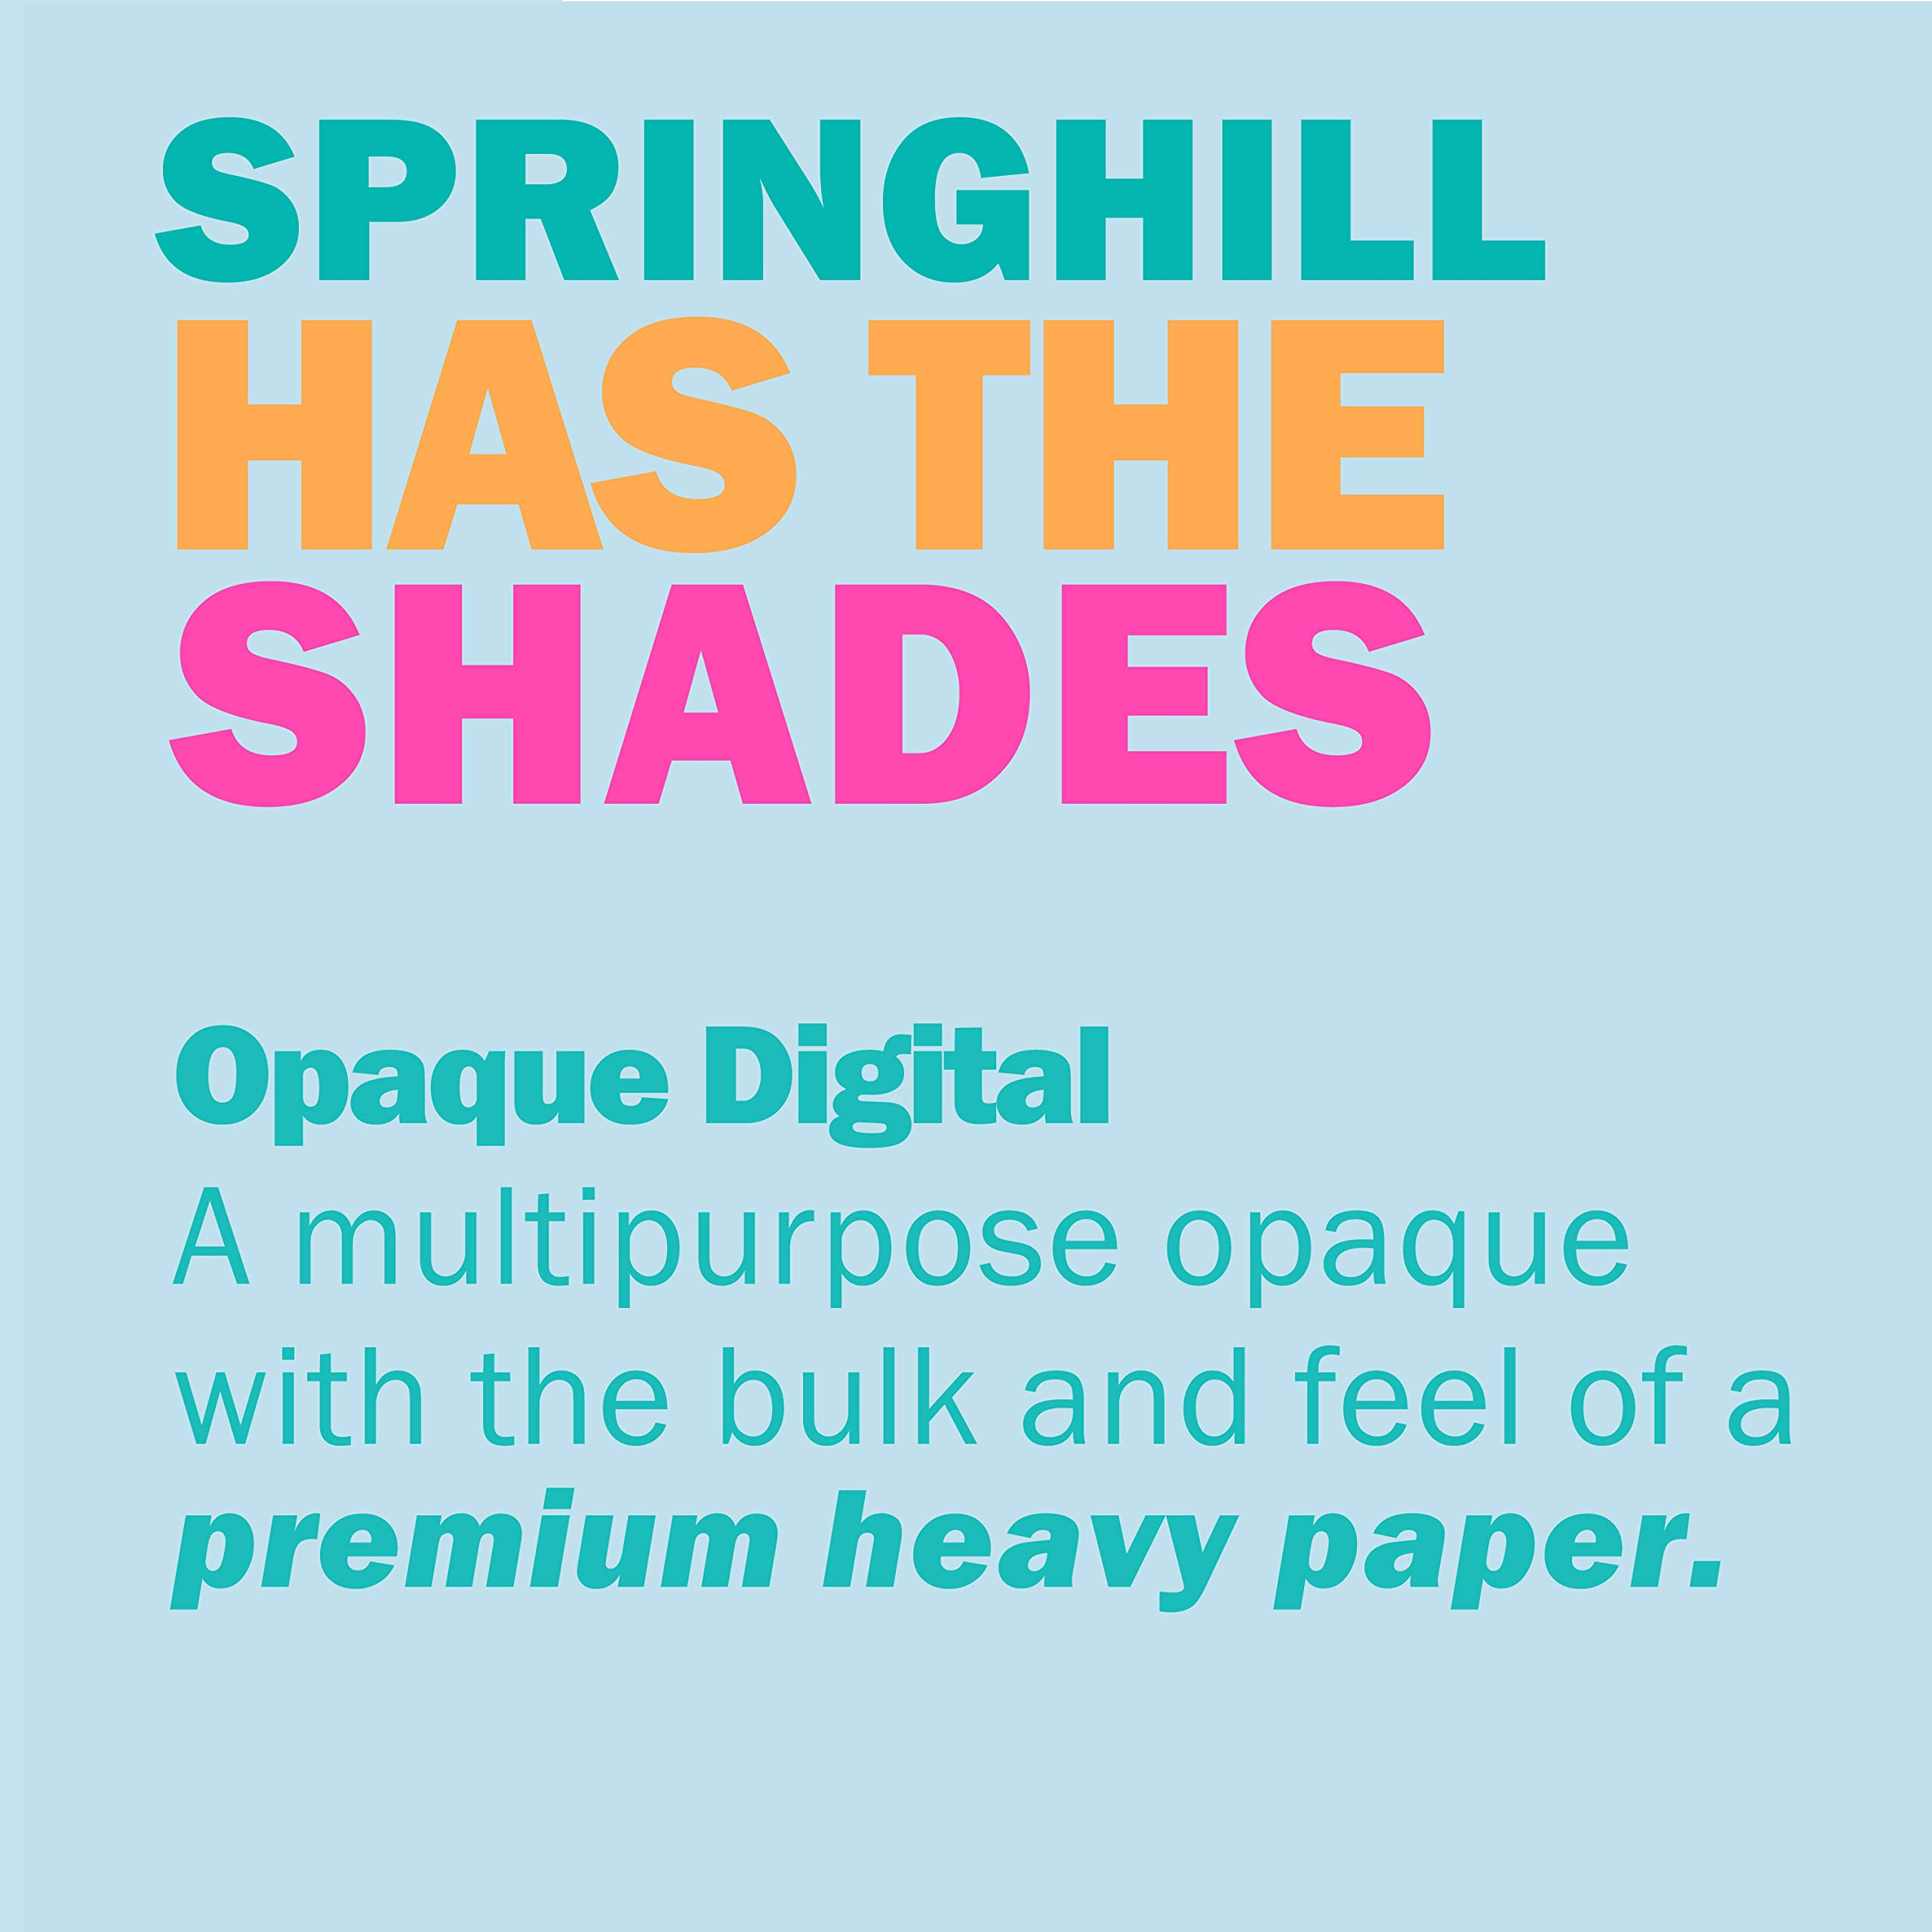 Springhill Colored Paper, Heavy Paper, Ivory Paper, 24/60lb, 89gsm, Ledger, 11 x 17, 4 Reams / 1,000 Sheets - Opaque, Thick Paper (024049C) by Springhill (Image #7)